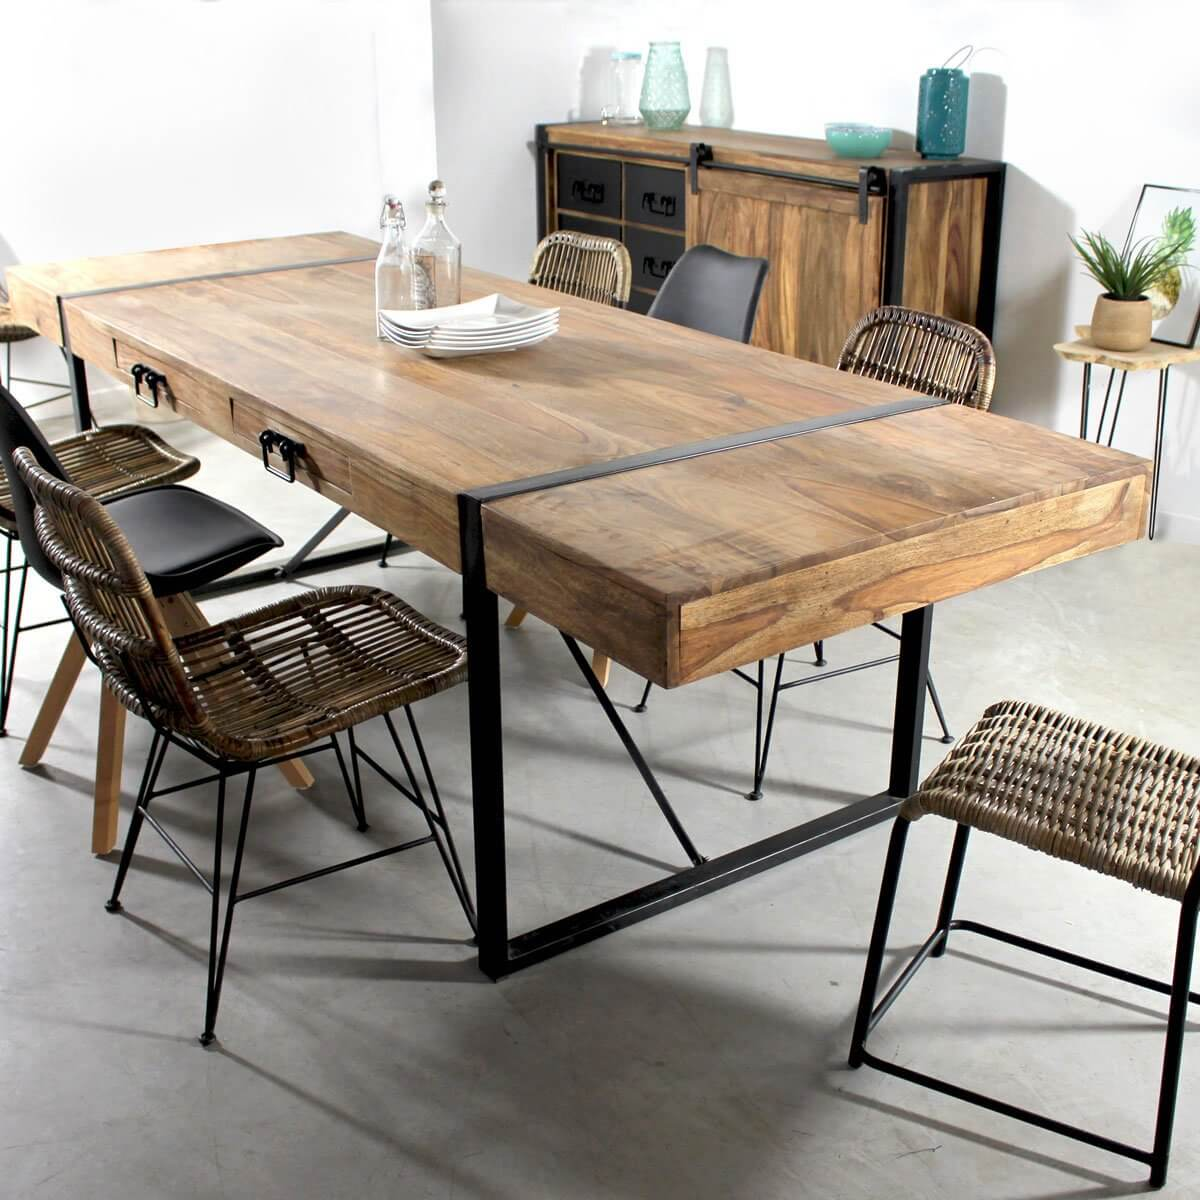 Table A Manger Avec Rallonges Industrielle Made In Meubles